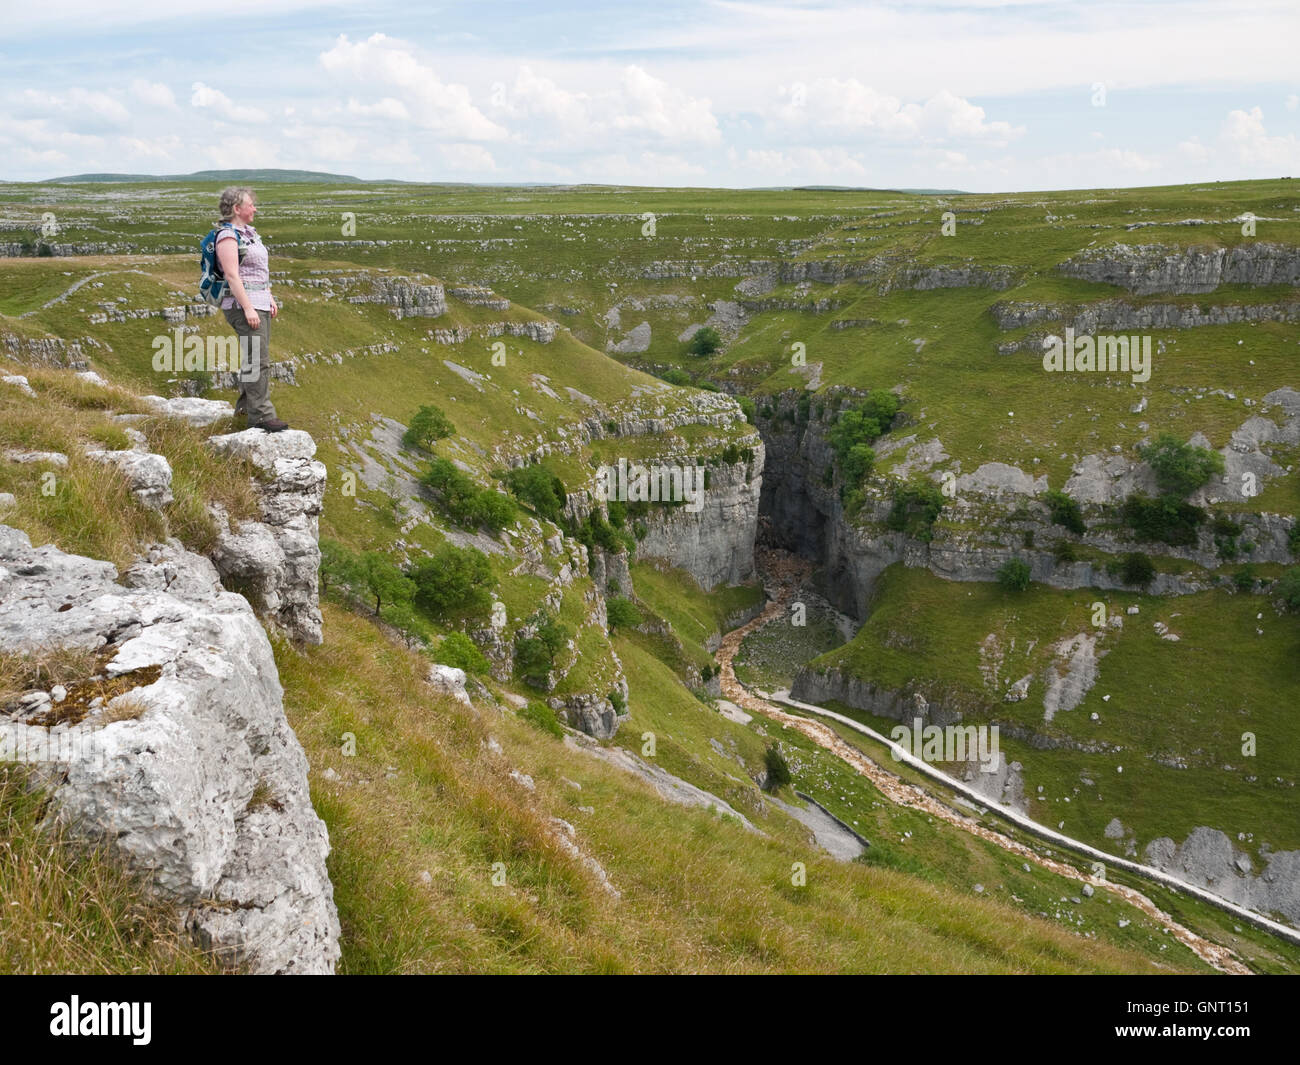 A female hiker admires the view into Gordale Scar, a limestone gorge near Malham in the Yorkshire Dales National - Stock Image